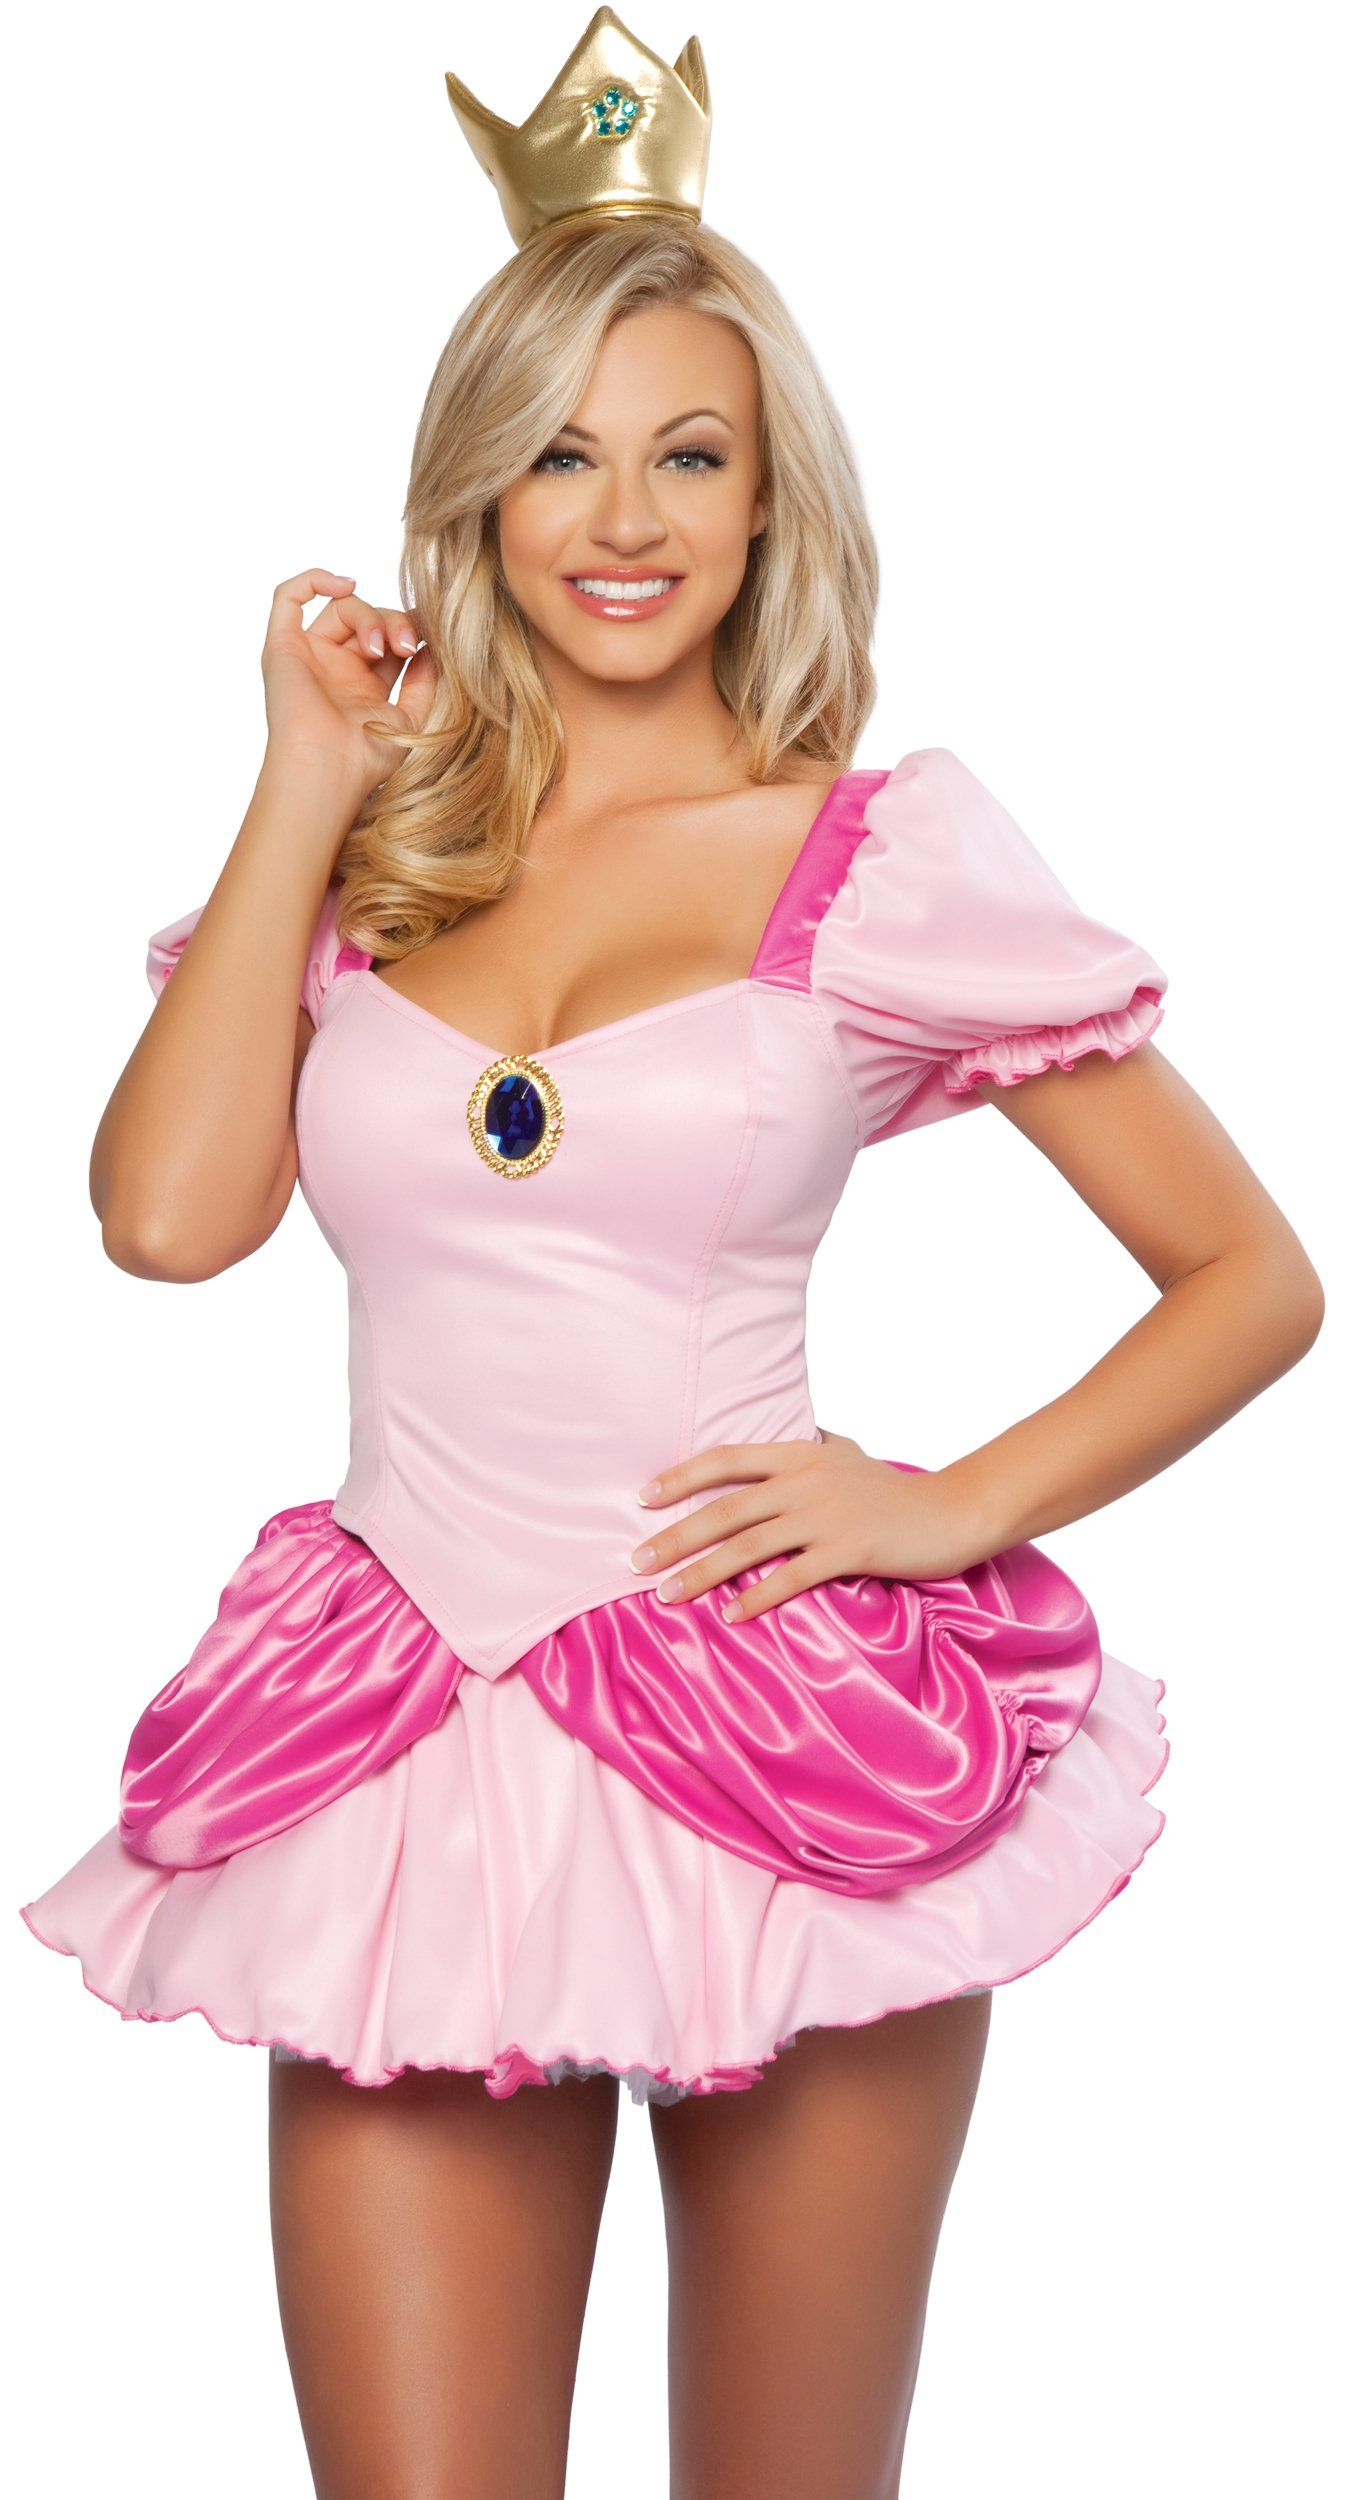 3WISHES 'Video Game Princess' Costume Sexy Video Game Costumes for Women